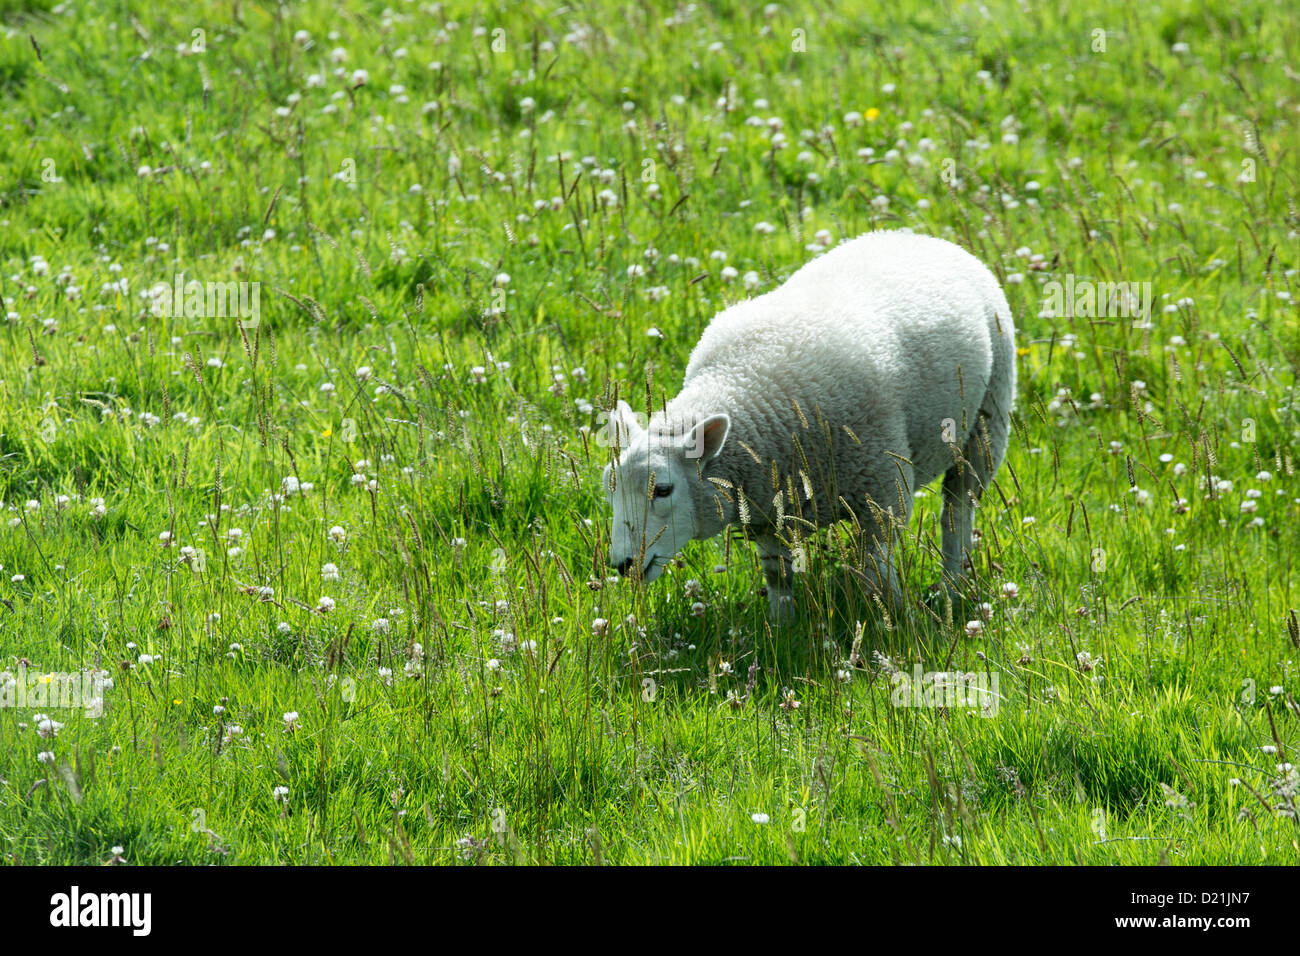 Sheep on meadow, Orkney Islands, Scotland, United Kingdom - Stock Image